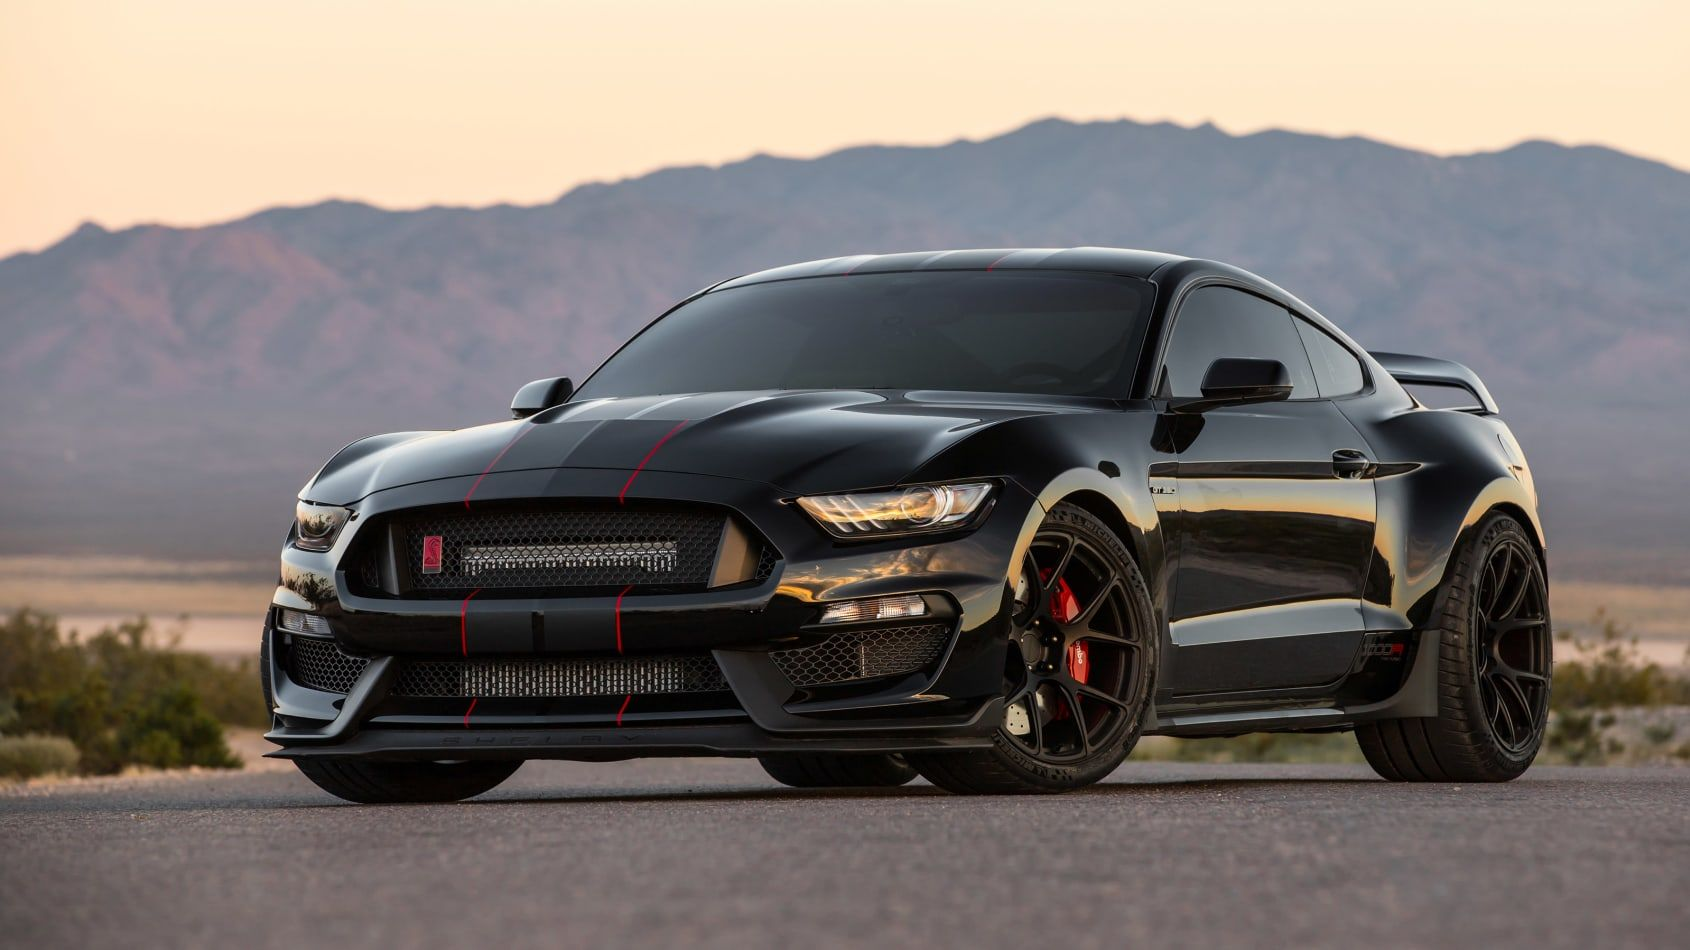 Ford Mustang Shelby Gt350 Gains 1 000hp From Twin Turbos For 39 999 Mustang Shelby Ford Mustang Shelby Mustang